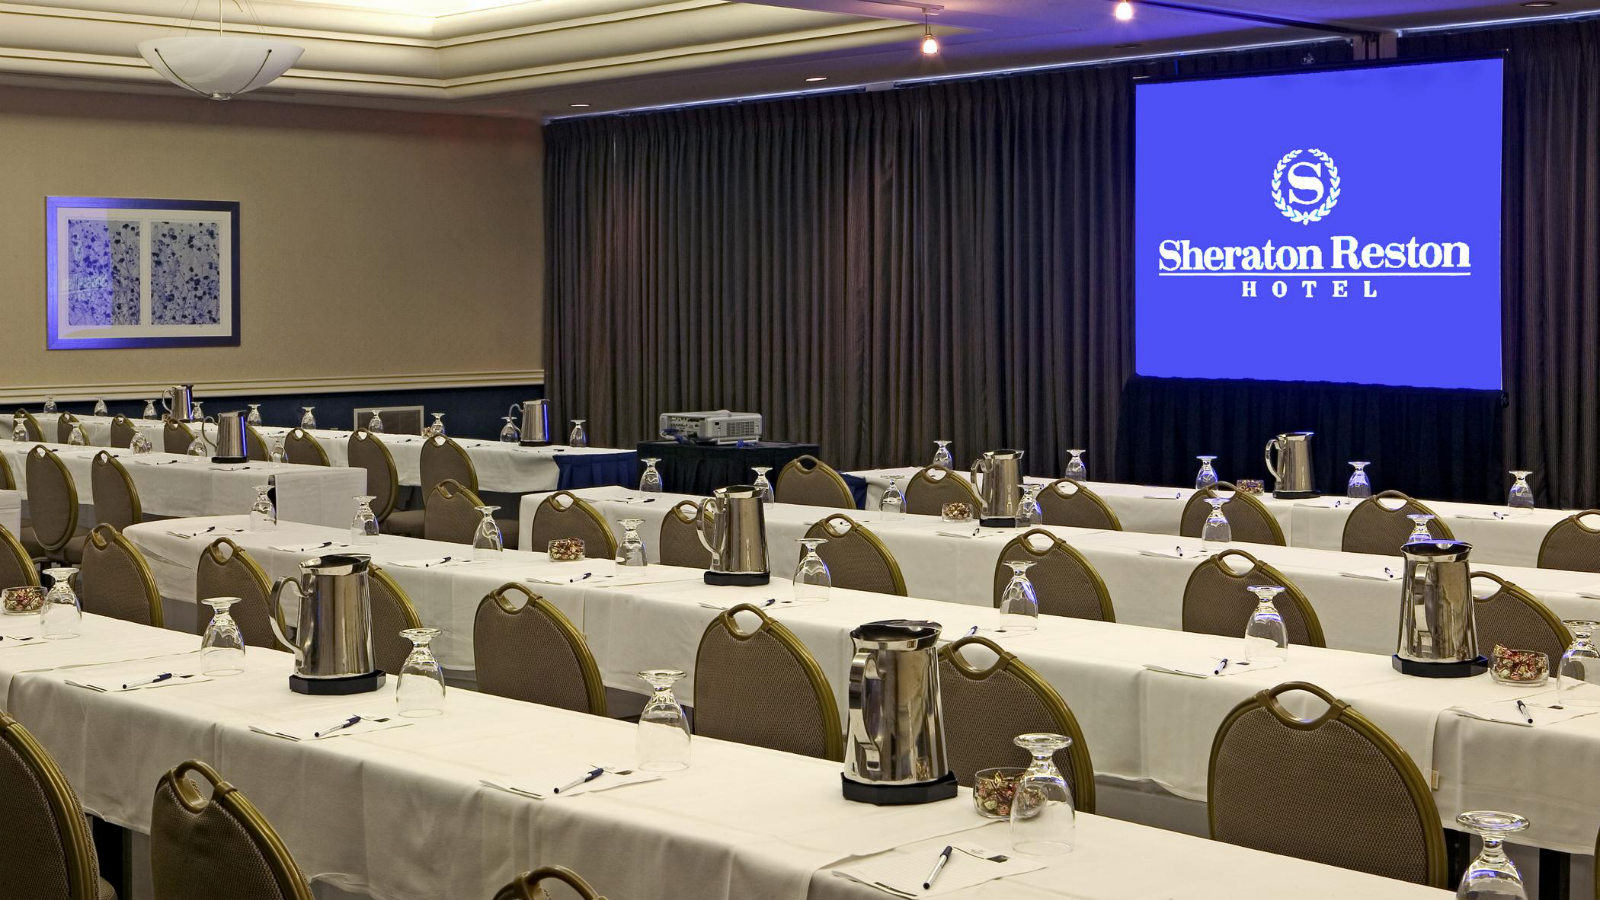 Sheraton Reston Hotel -  Meeting Space